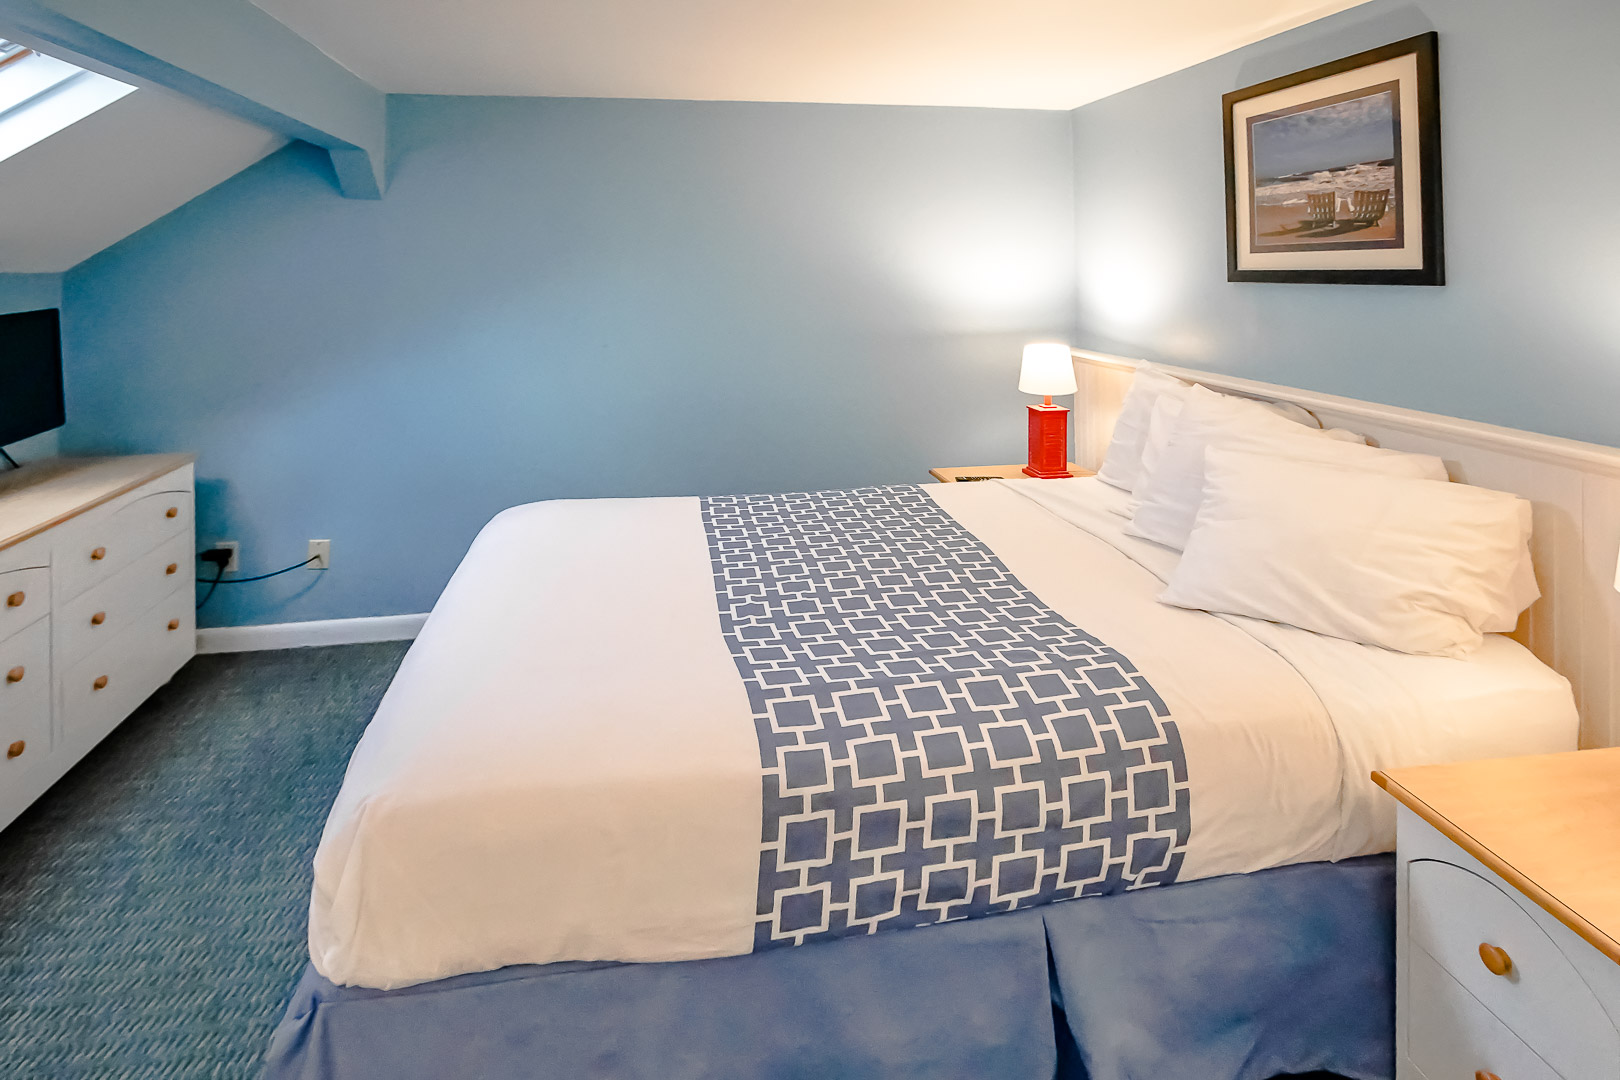 A master bedroom with a king size bed at VRI's Seawinds II Resort in Massachusetts.